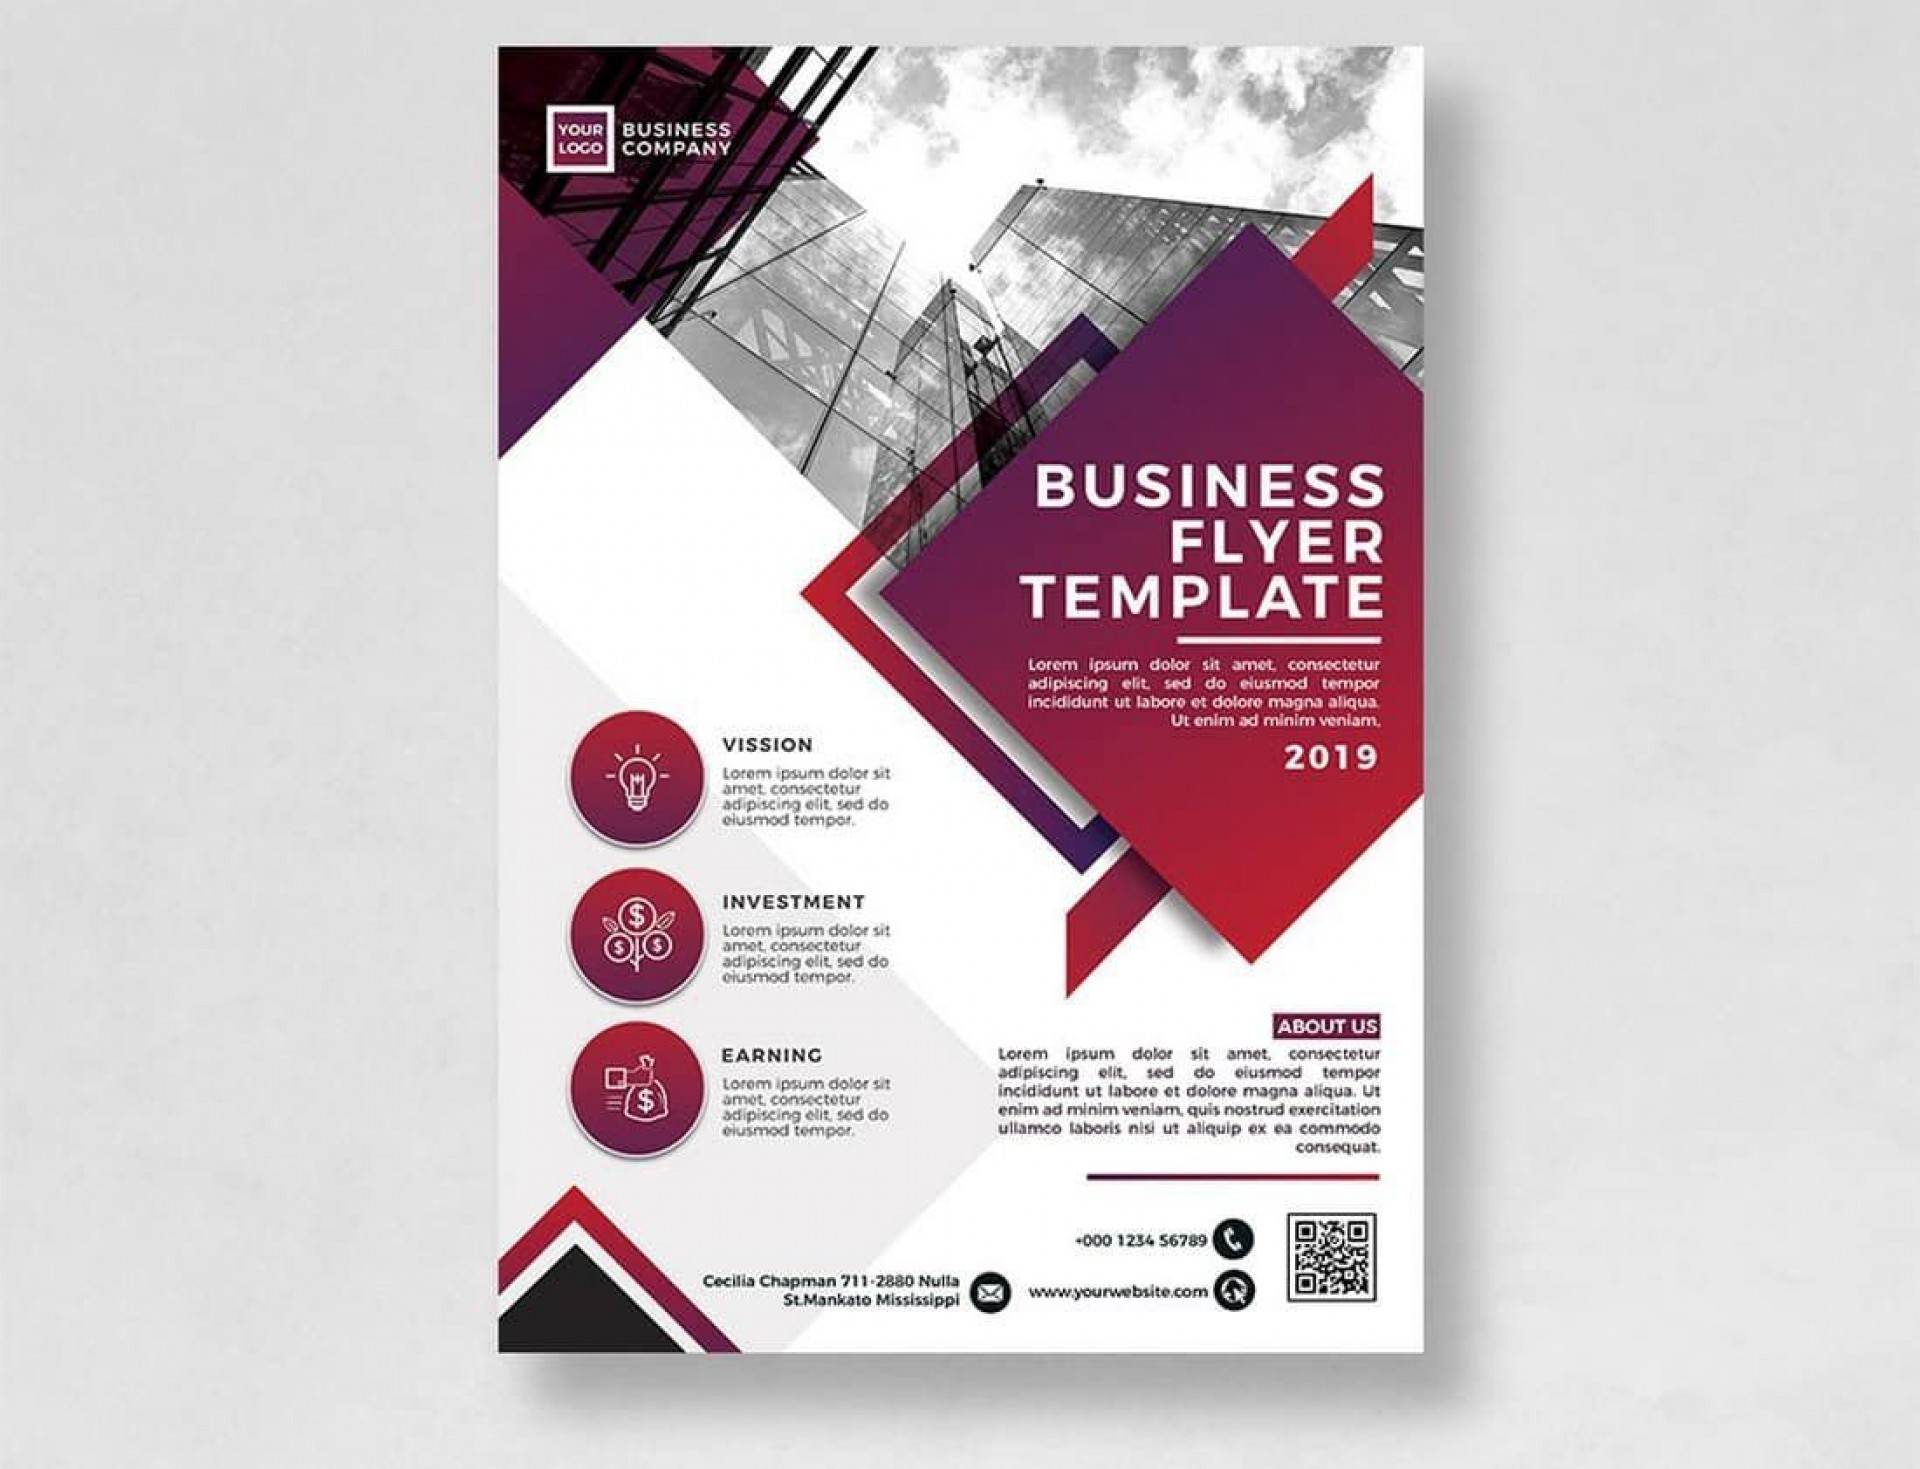 007 Exceptional Busines Flyer Template Psd Free Download High Definition 1920